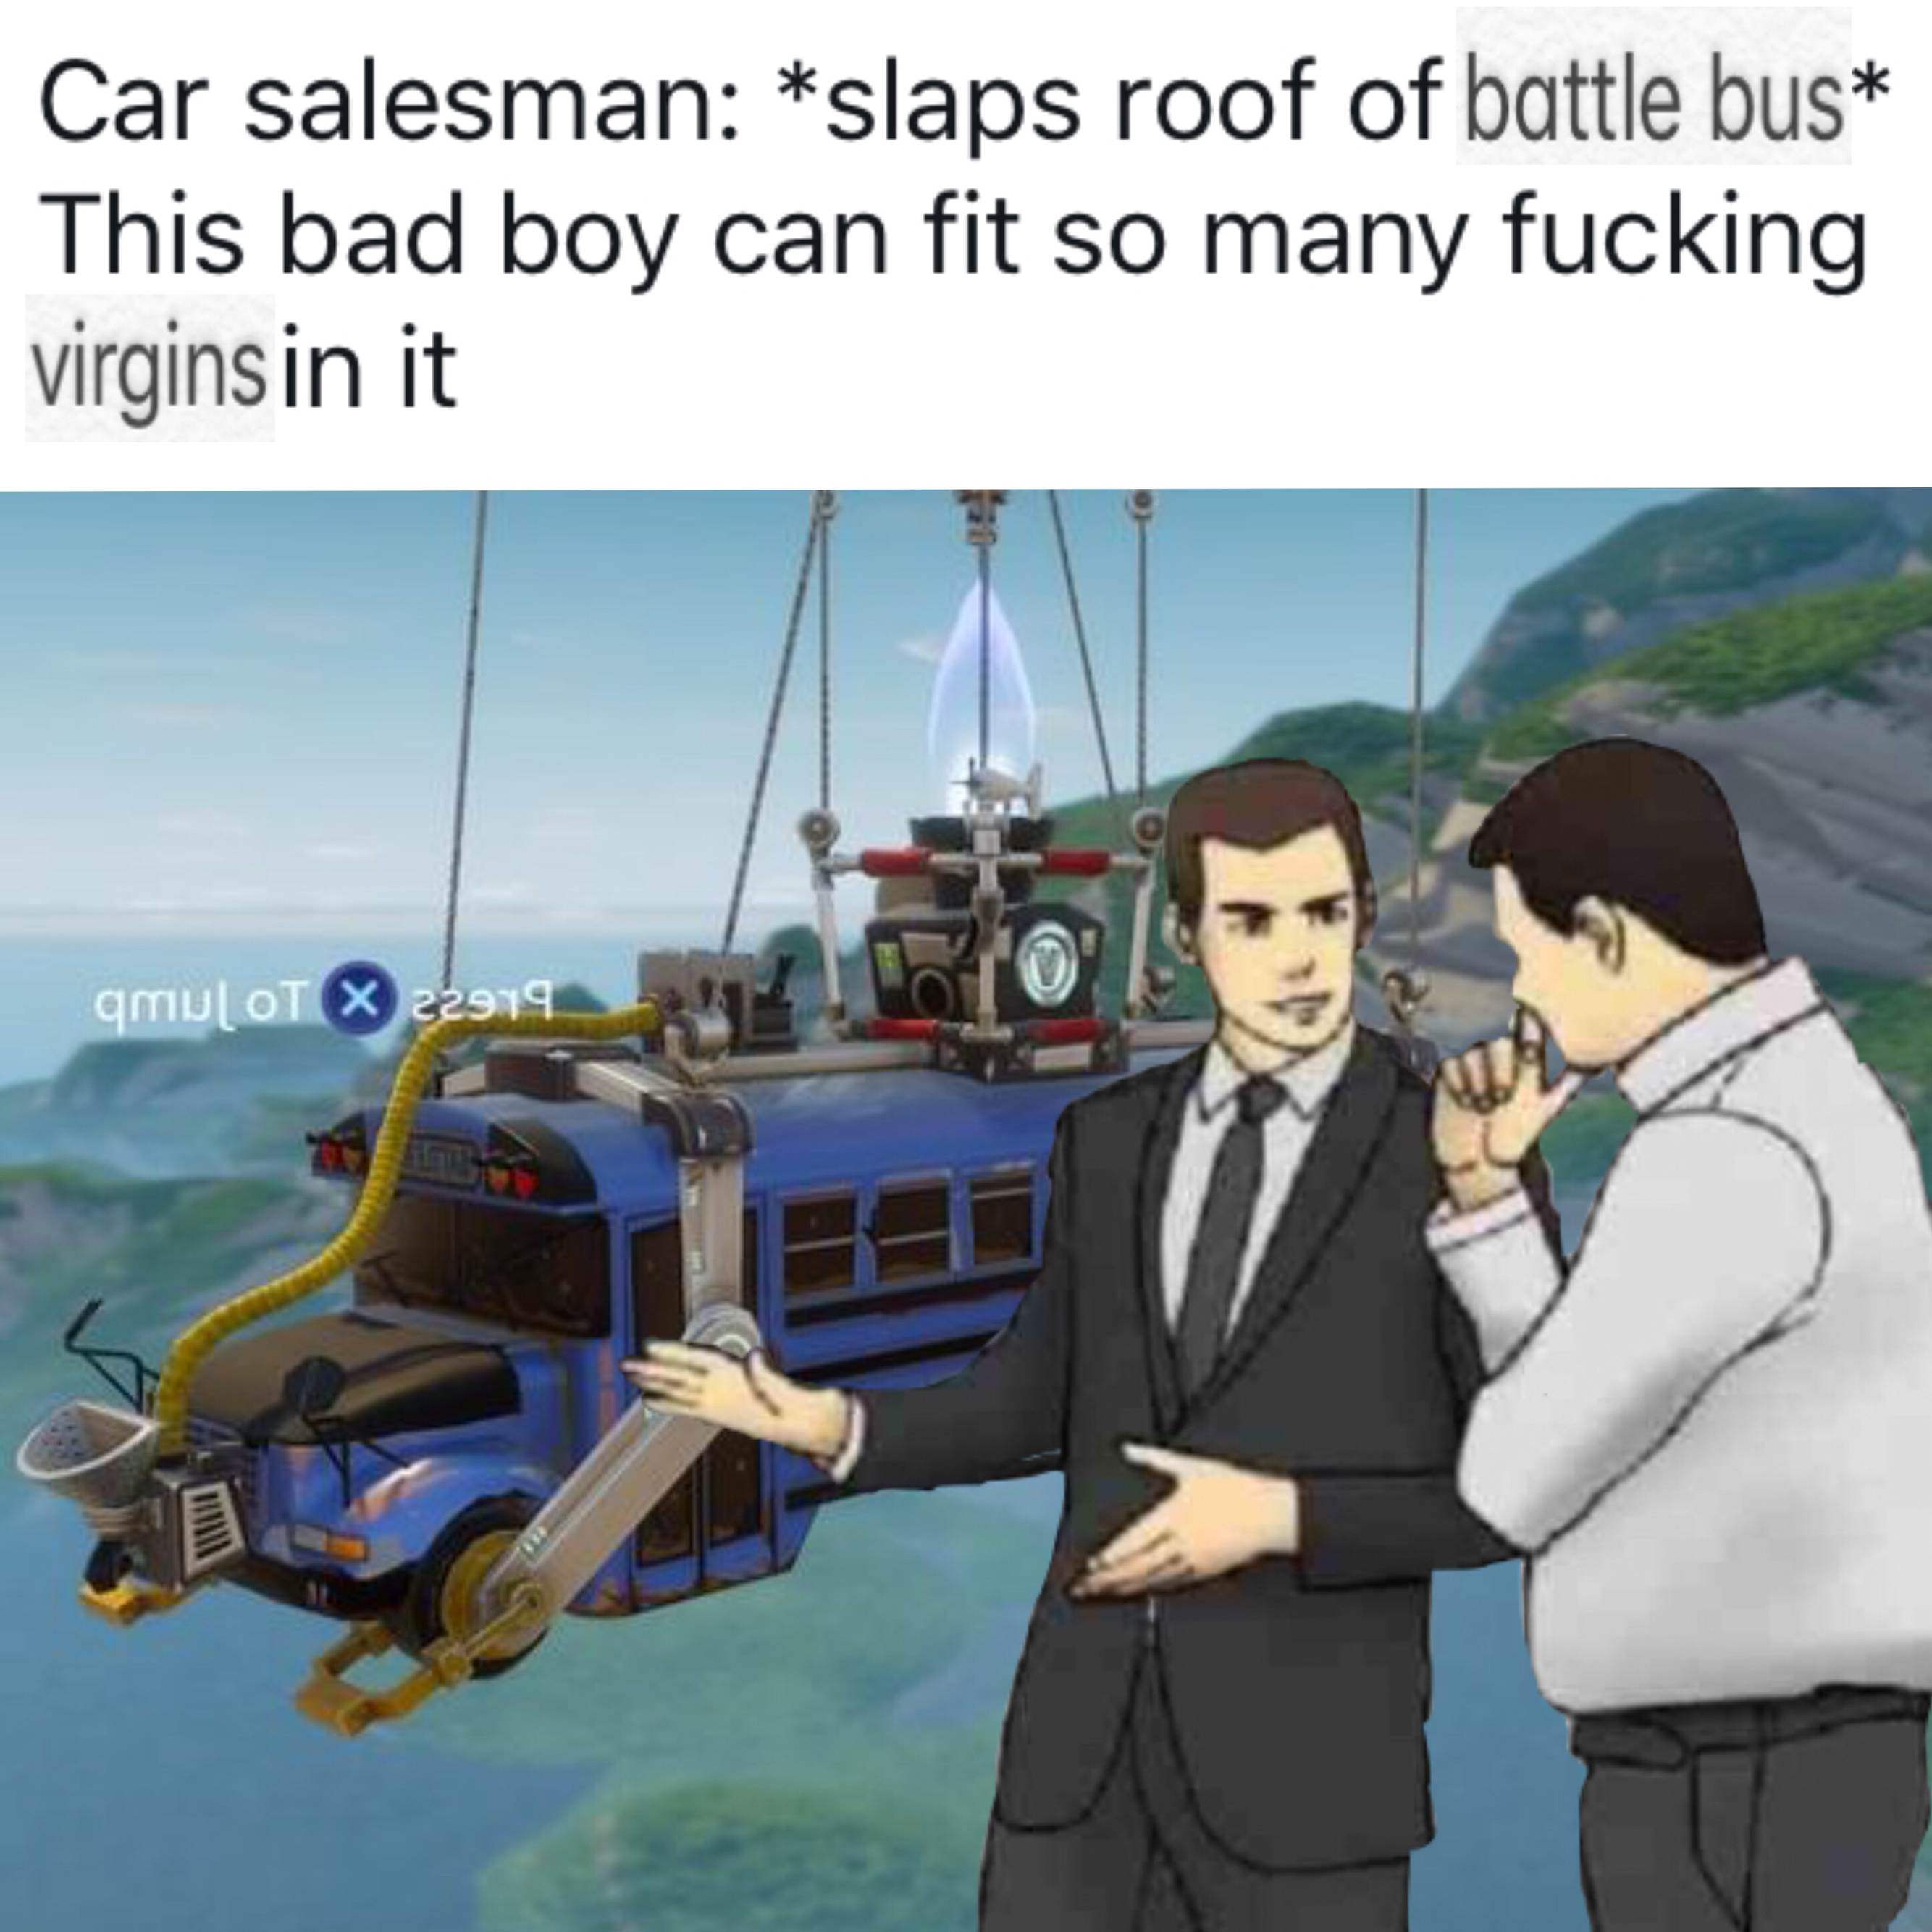 Car salesman slaps roof of battle bus this bad boy can fit so